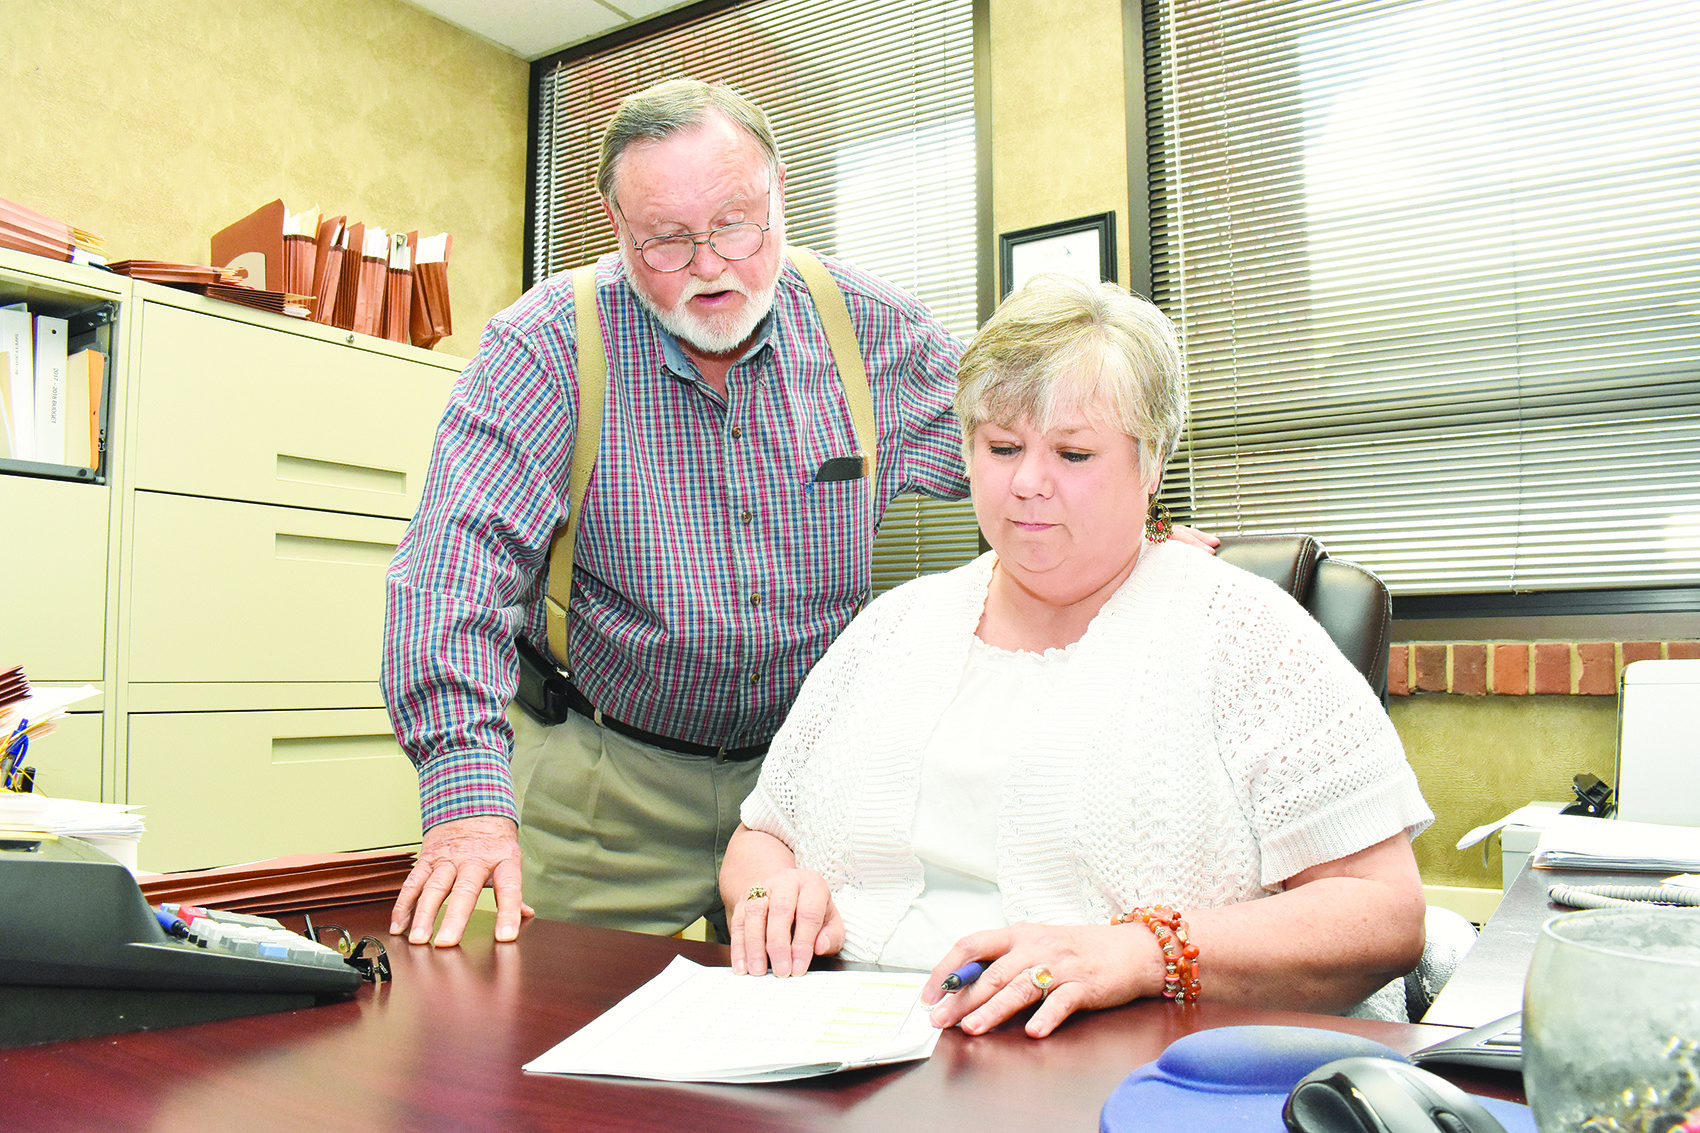 Walker County Administrator Robbie Dickerson shows some financial figures to Walker County Commission Chairman Jerry Bishop in her office recently. Dickerson has become the permanent county administrator after serving on an interim basis since January.